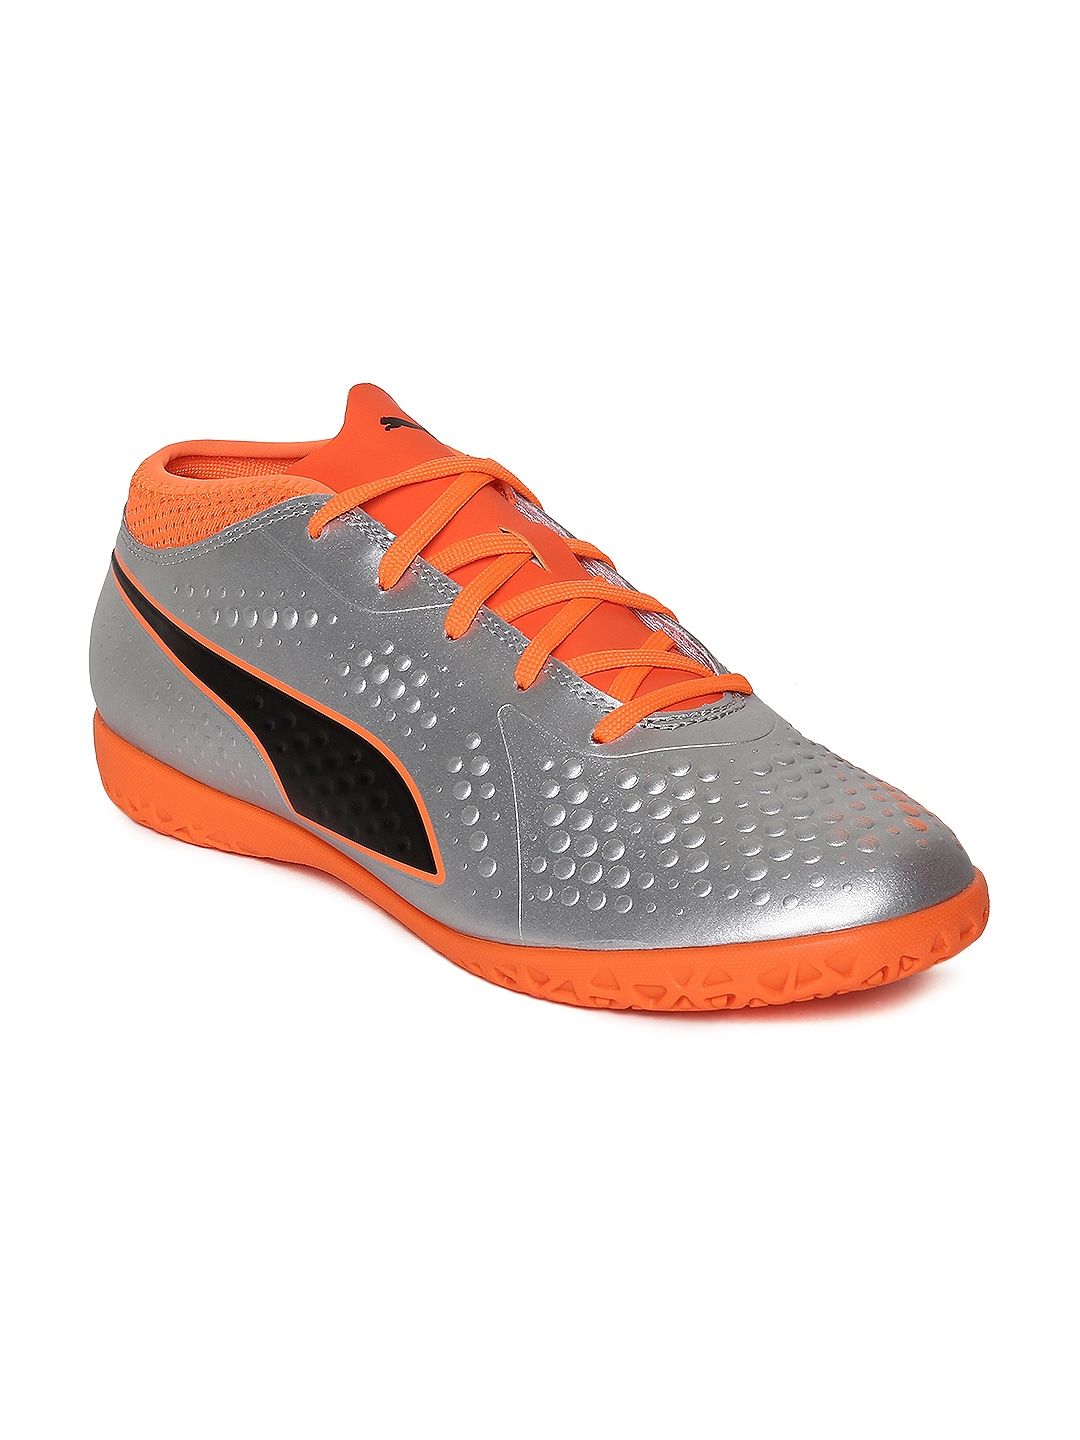 551a57c4b05386 Boys Sports Shoes - Buy Sports Shoes For Kids Online in India